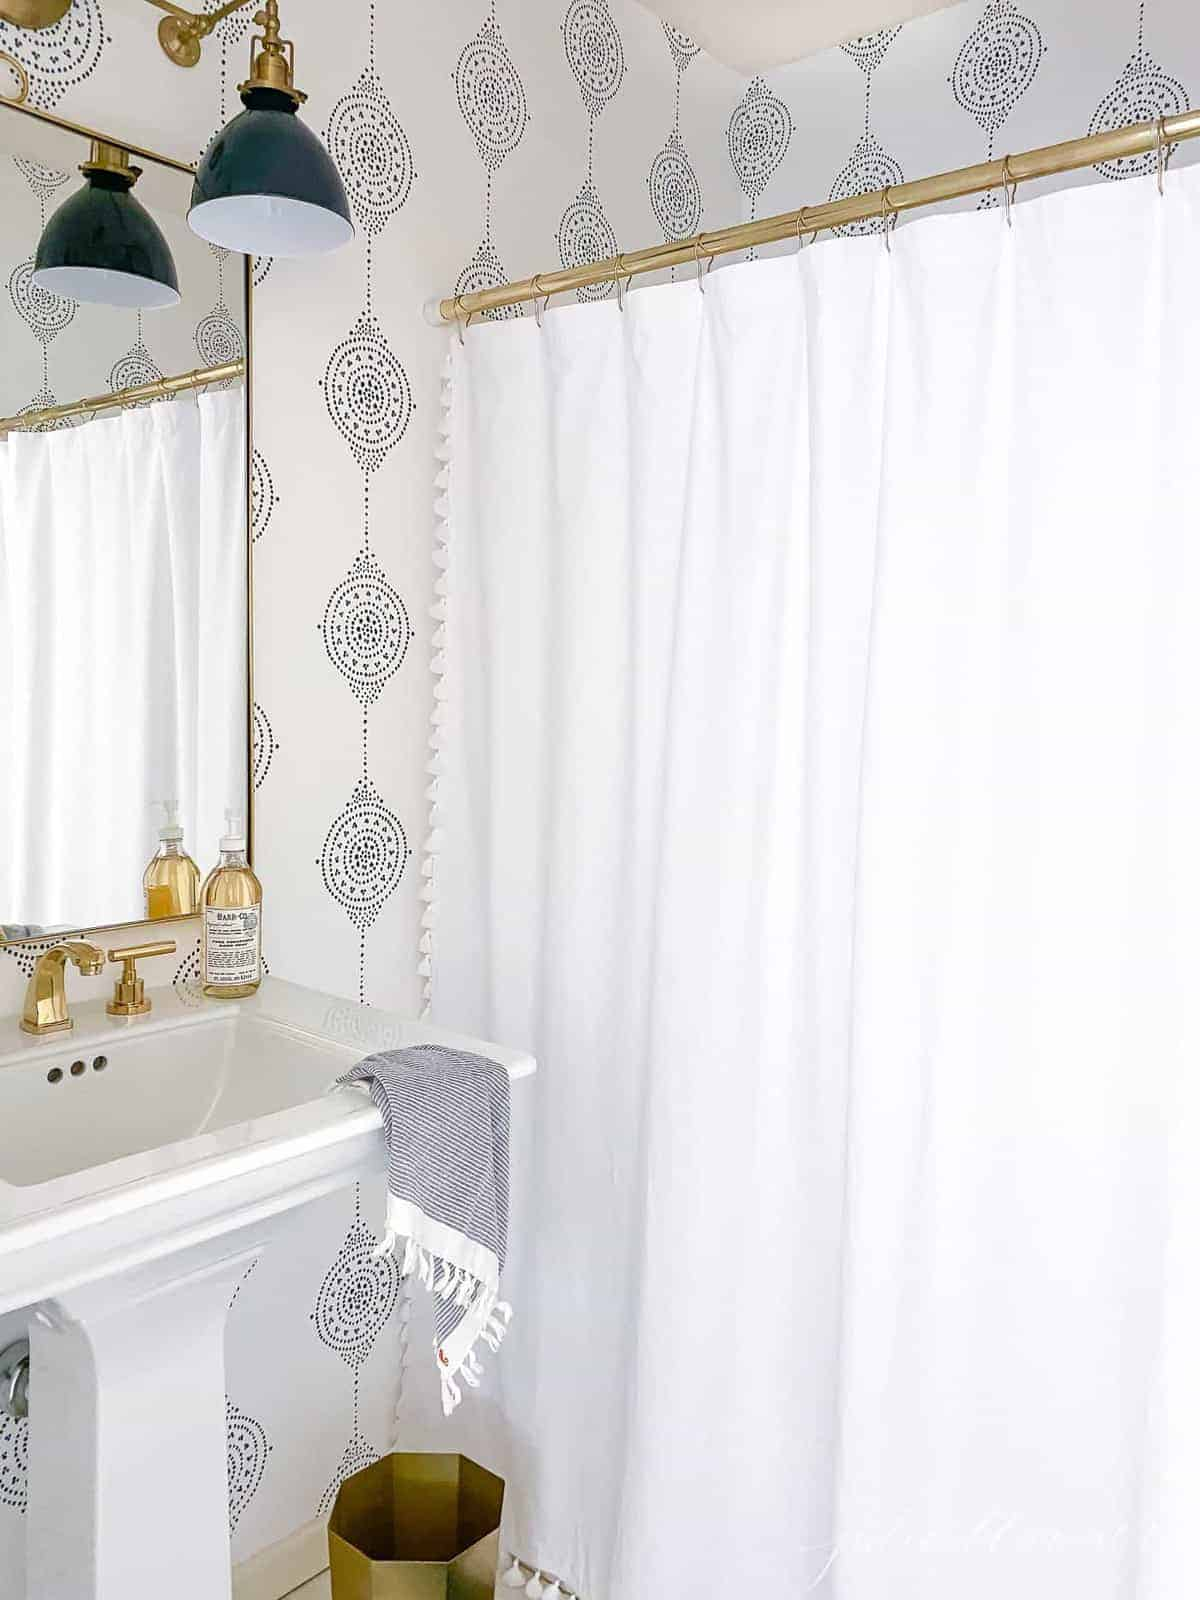 A small bathroom with blue and white wallpaper and a pedestal sink